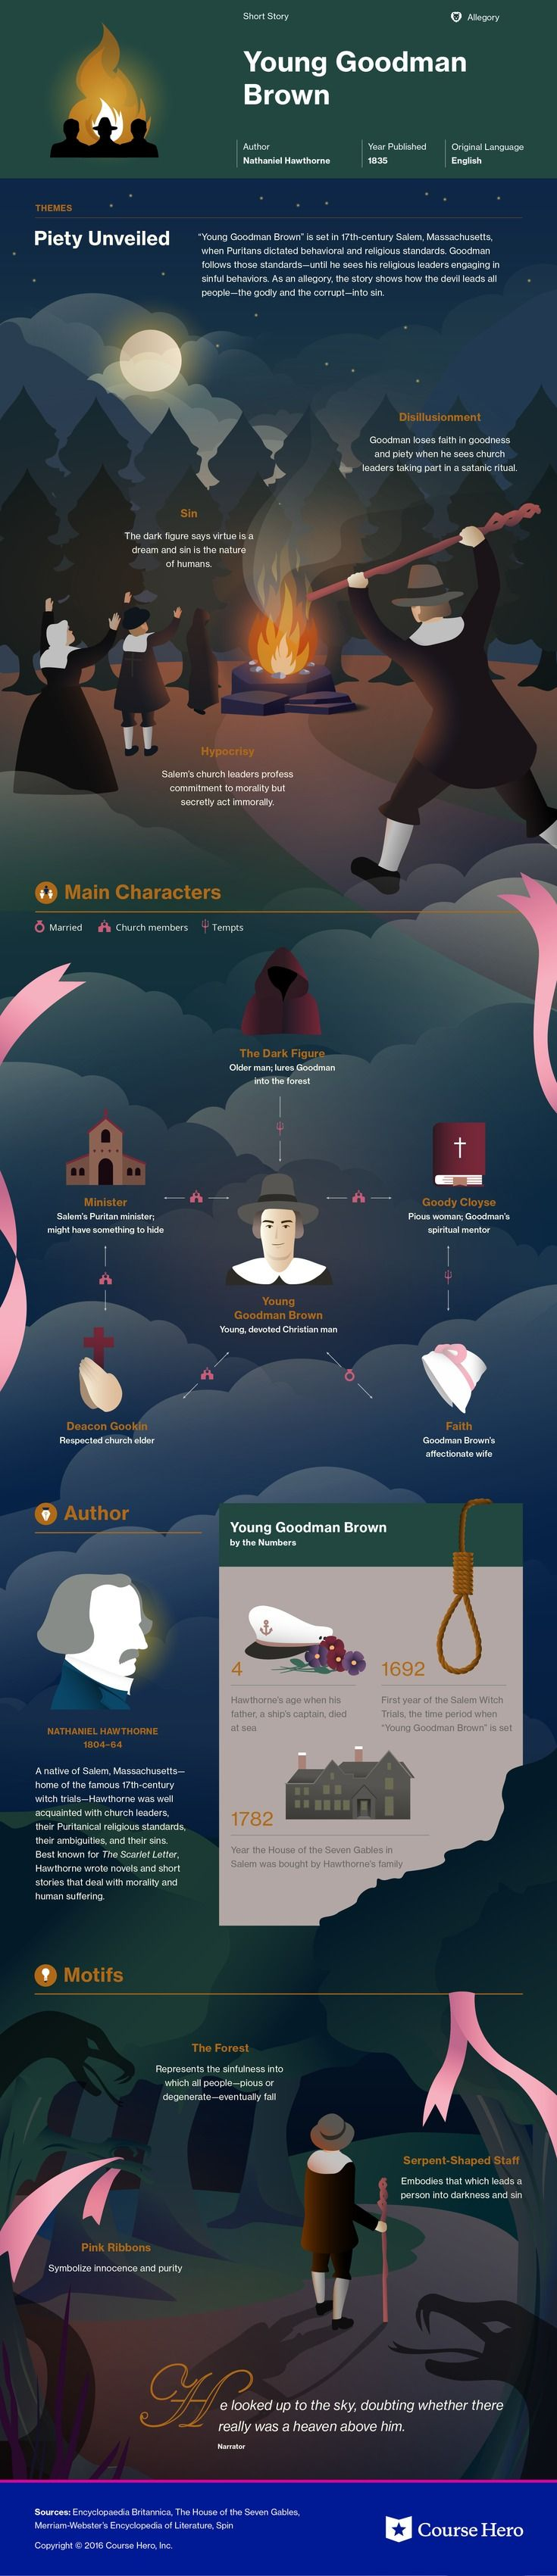 This @CourseHero infographic on Young Goodman Brown is both visually stunning and informative!